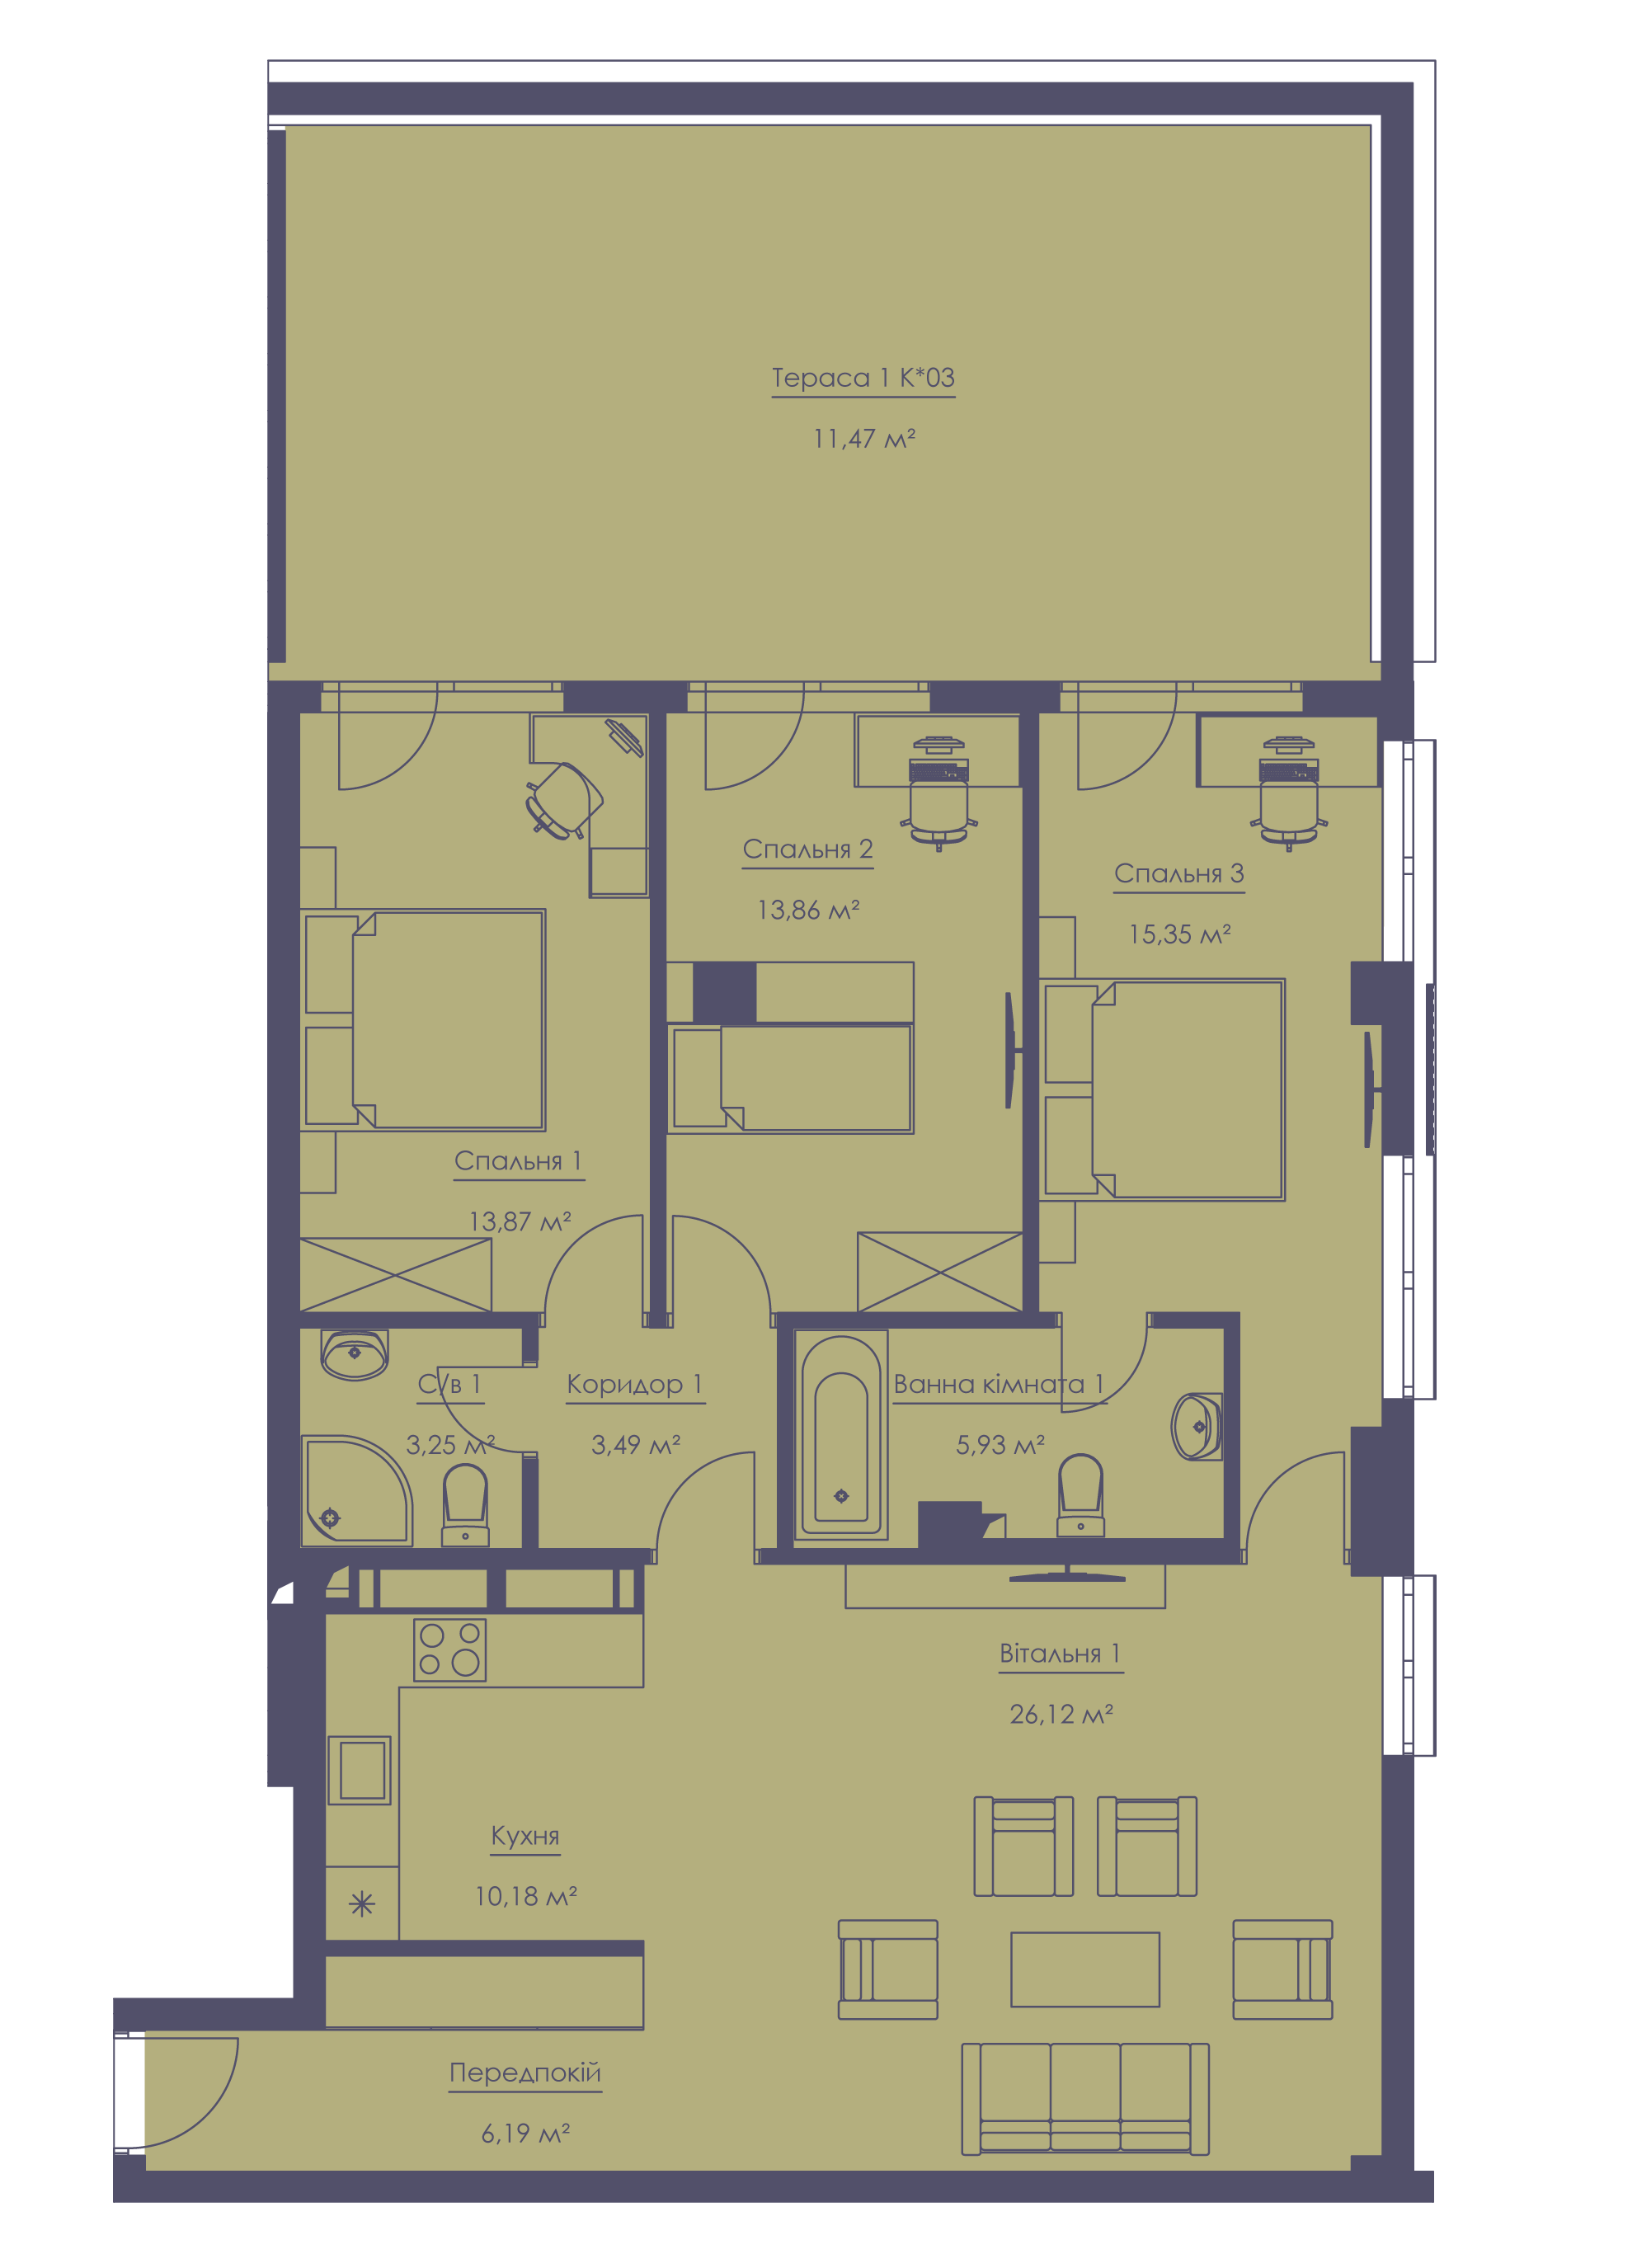 Apartment layout KV_11_1.4v_1_1_11-1